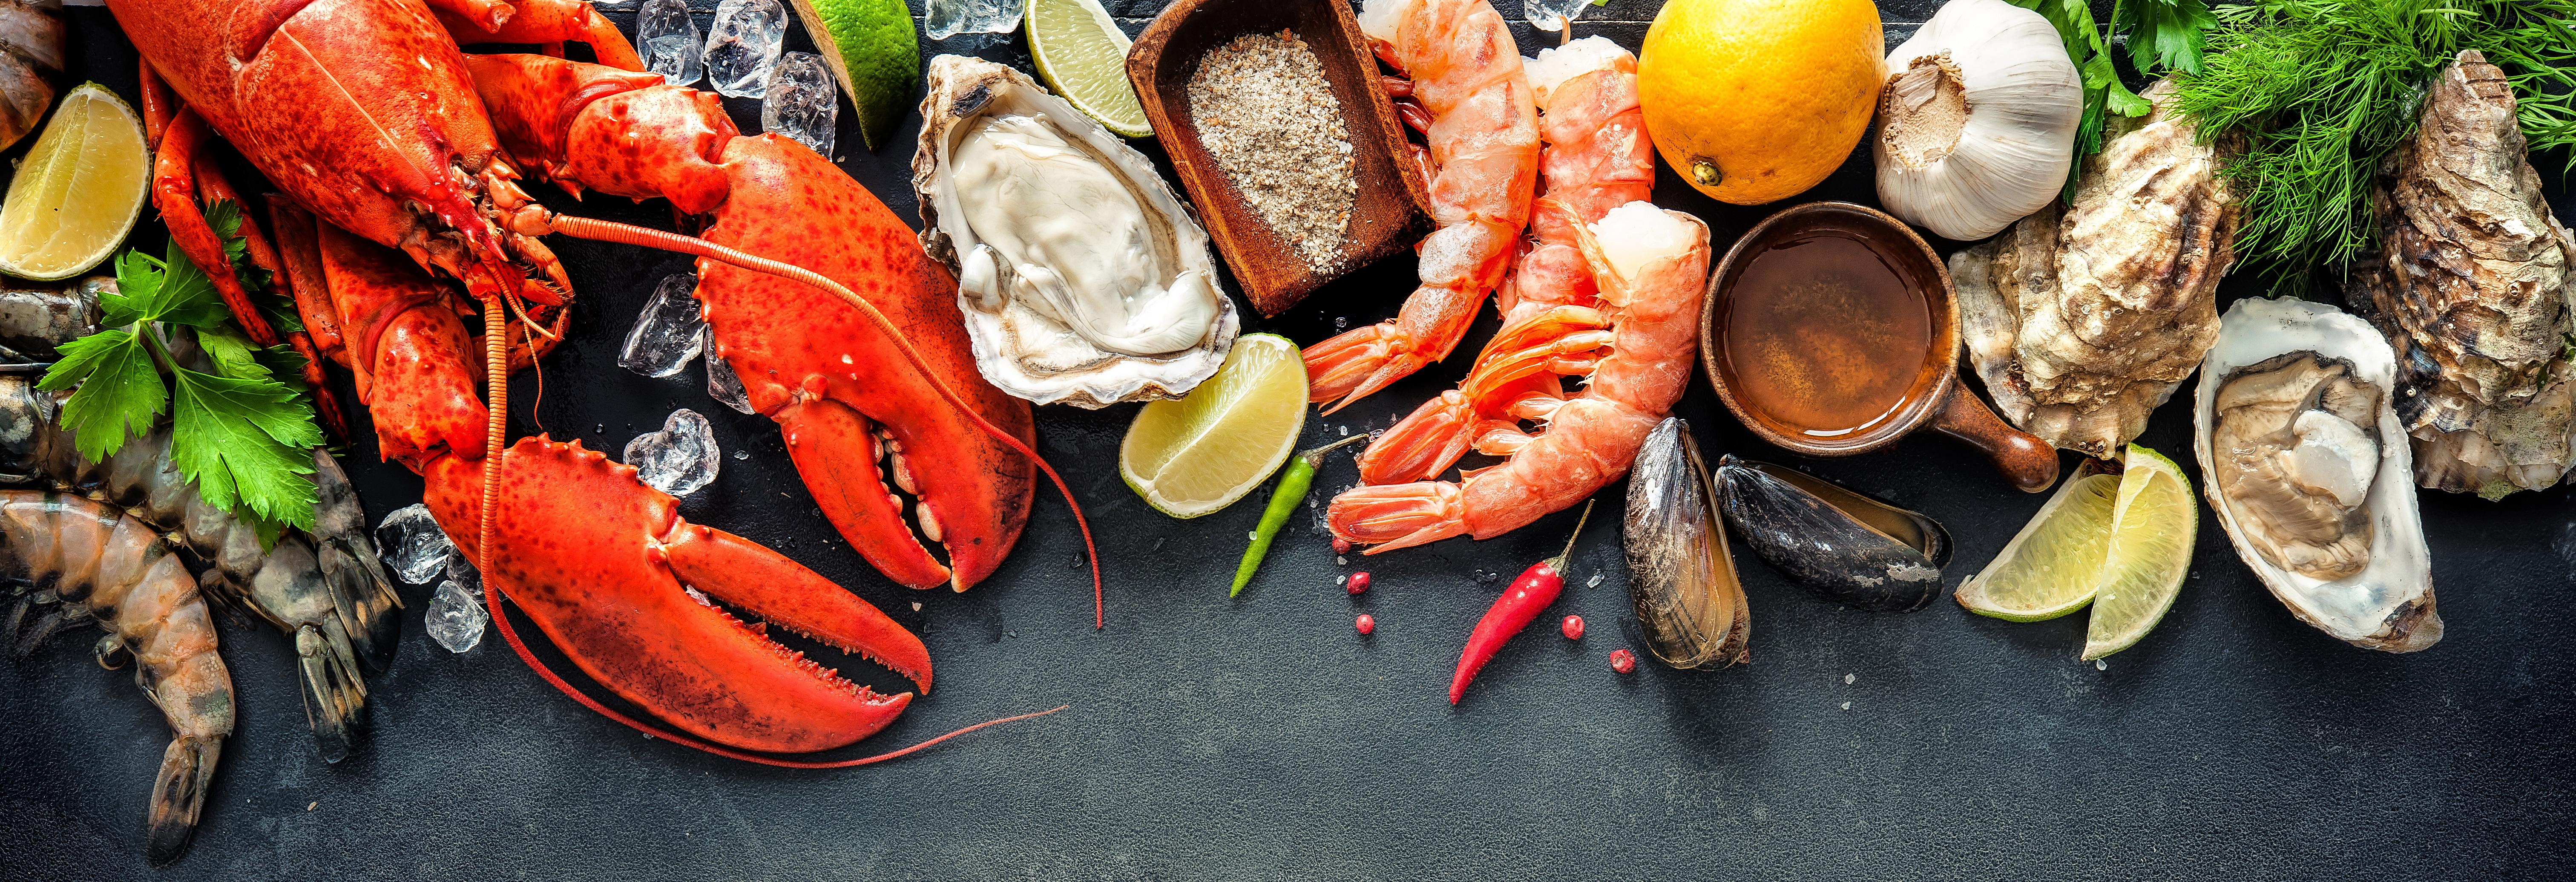 philadelphia lobster and fish, lobster,fish,produce,wynnewood,sushi,seafood,produce trays